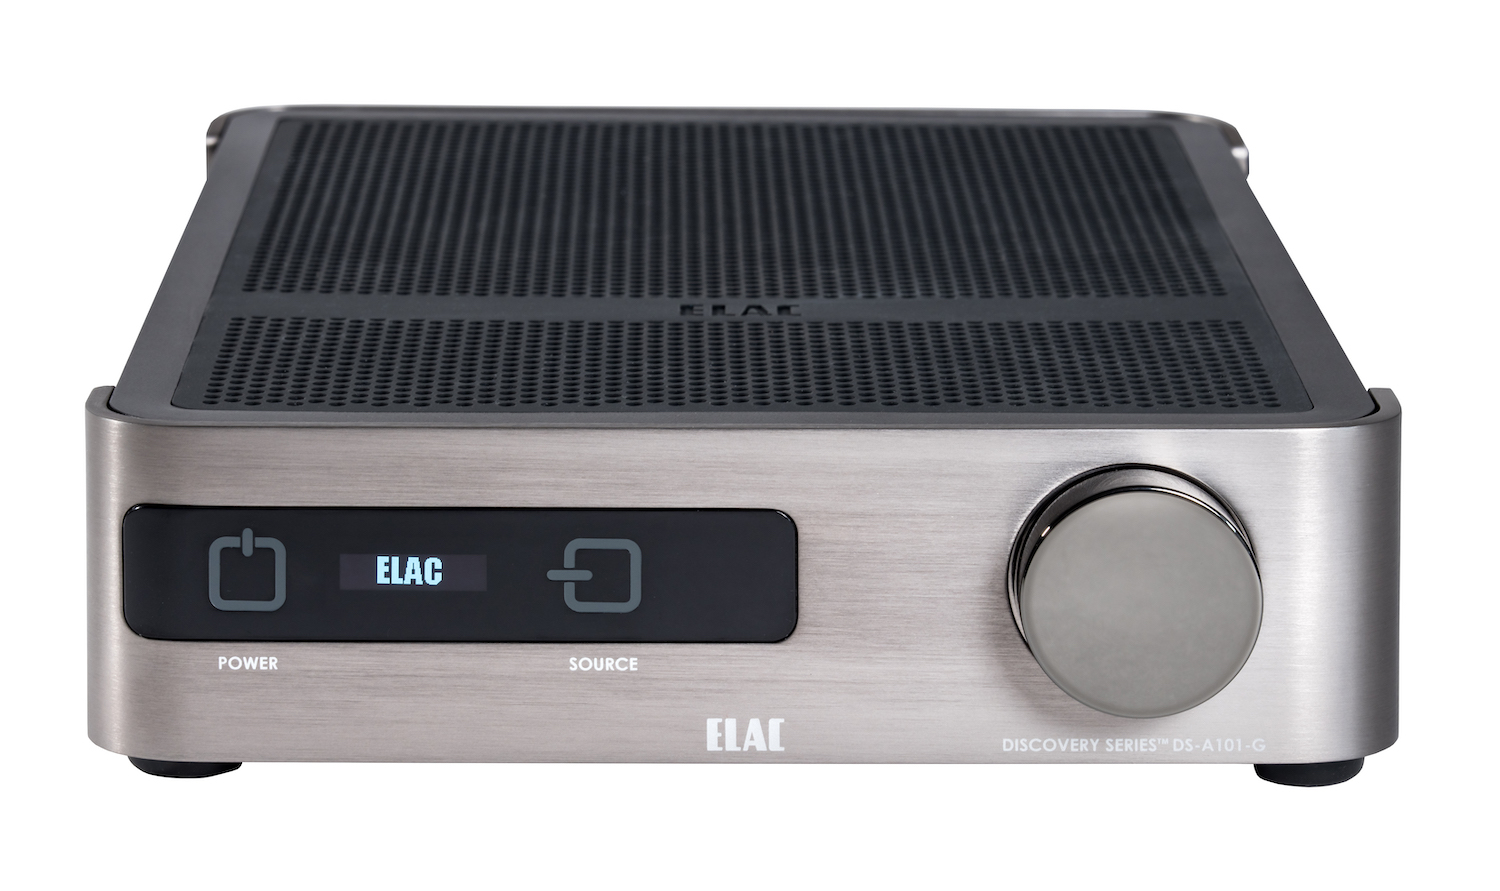 Elac DS-A101 streamingversterker